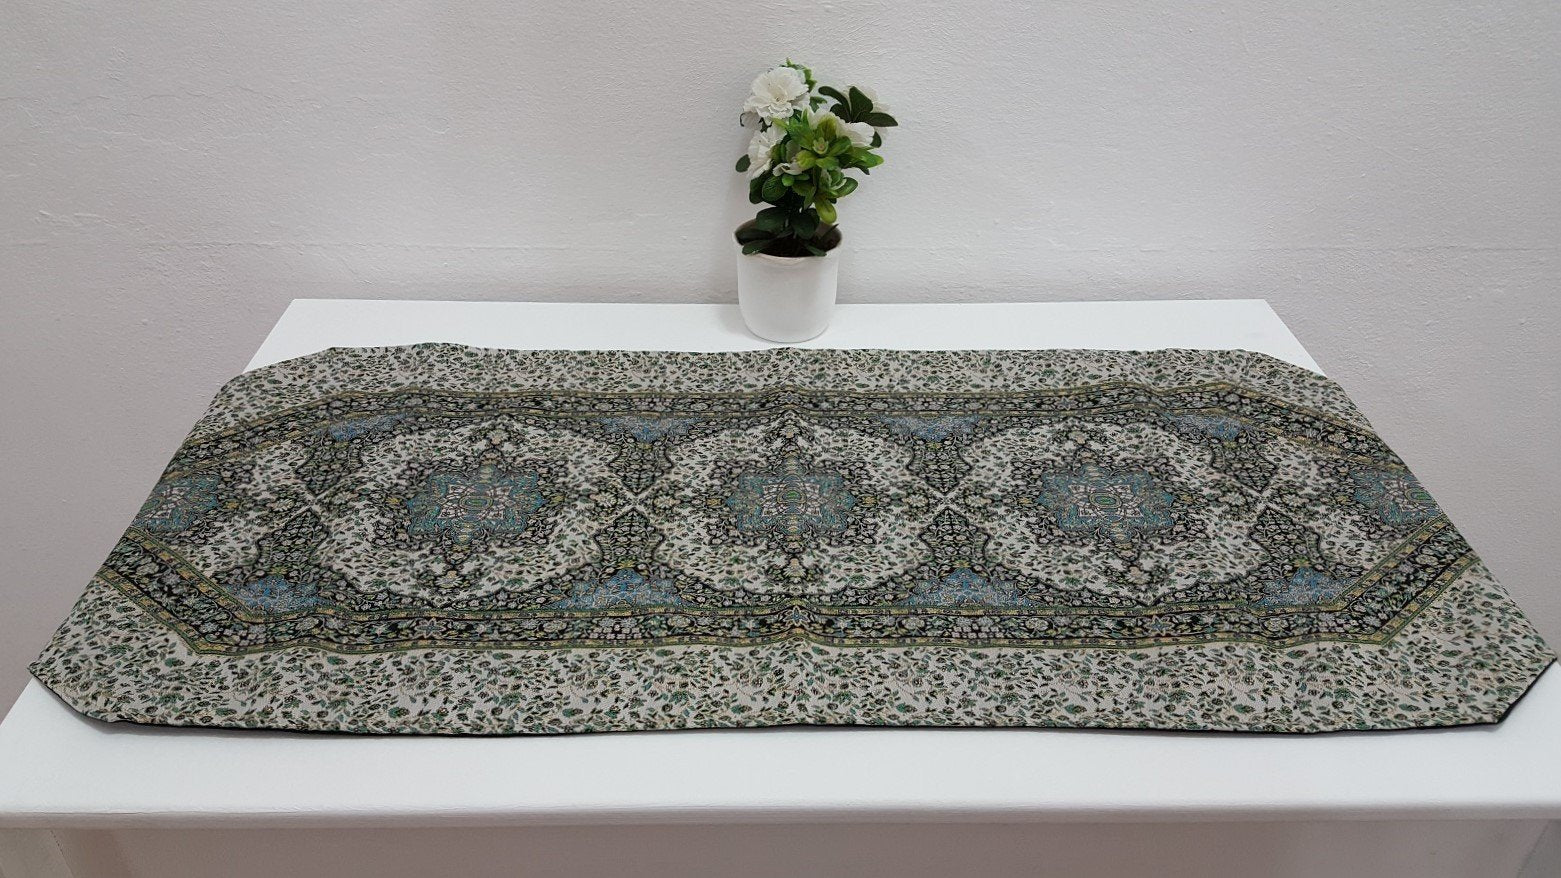 Decorative_Table_Runner_with_Exotic_Design_2_1090x@2x?vu003d1525605505